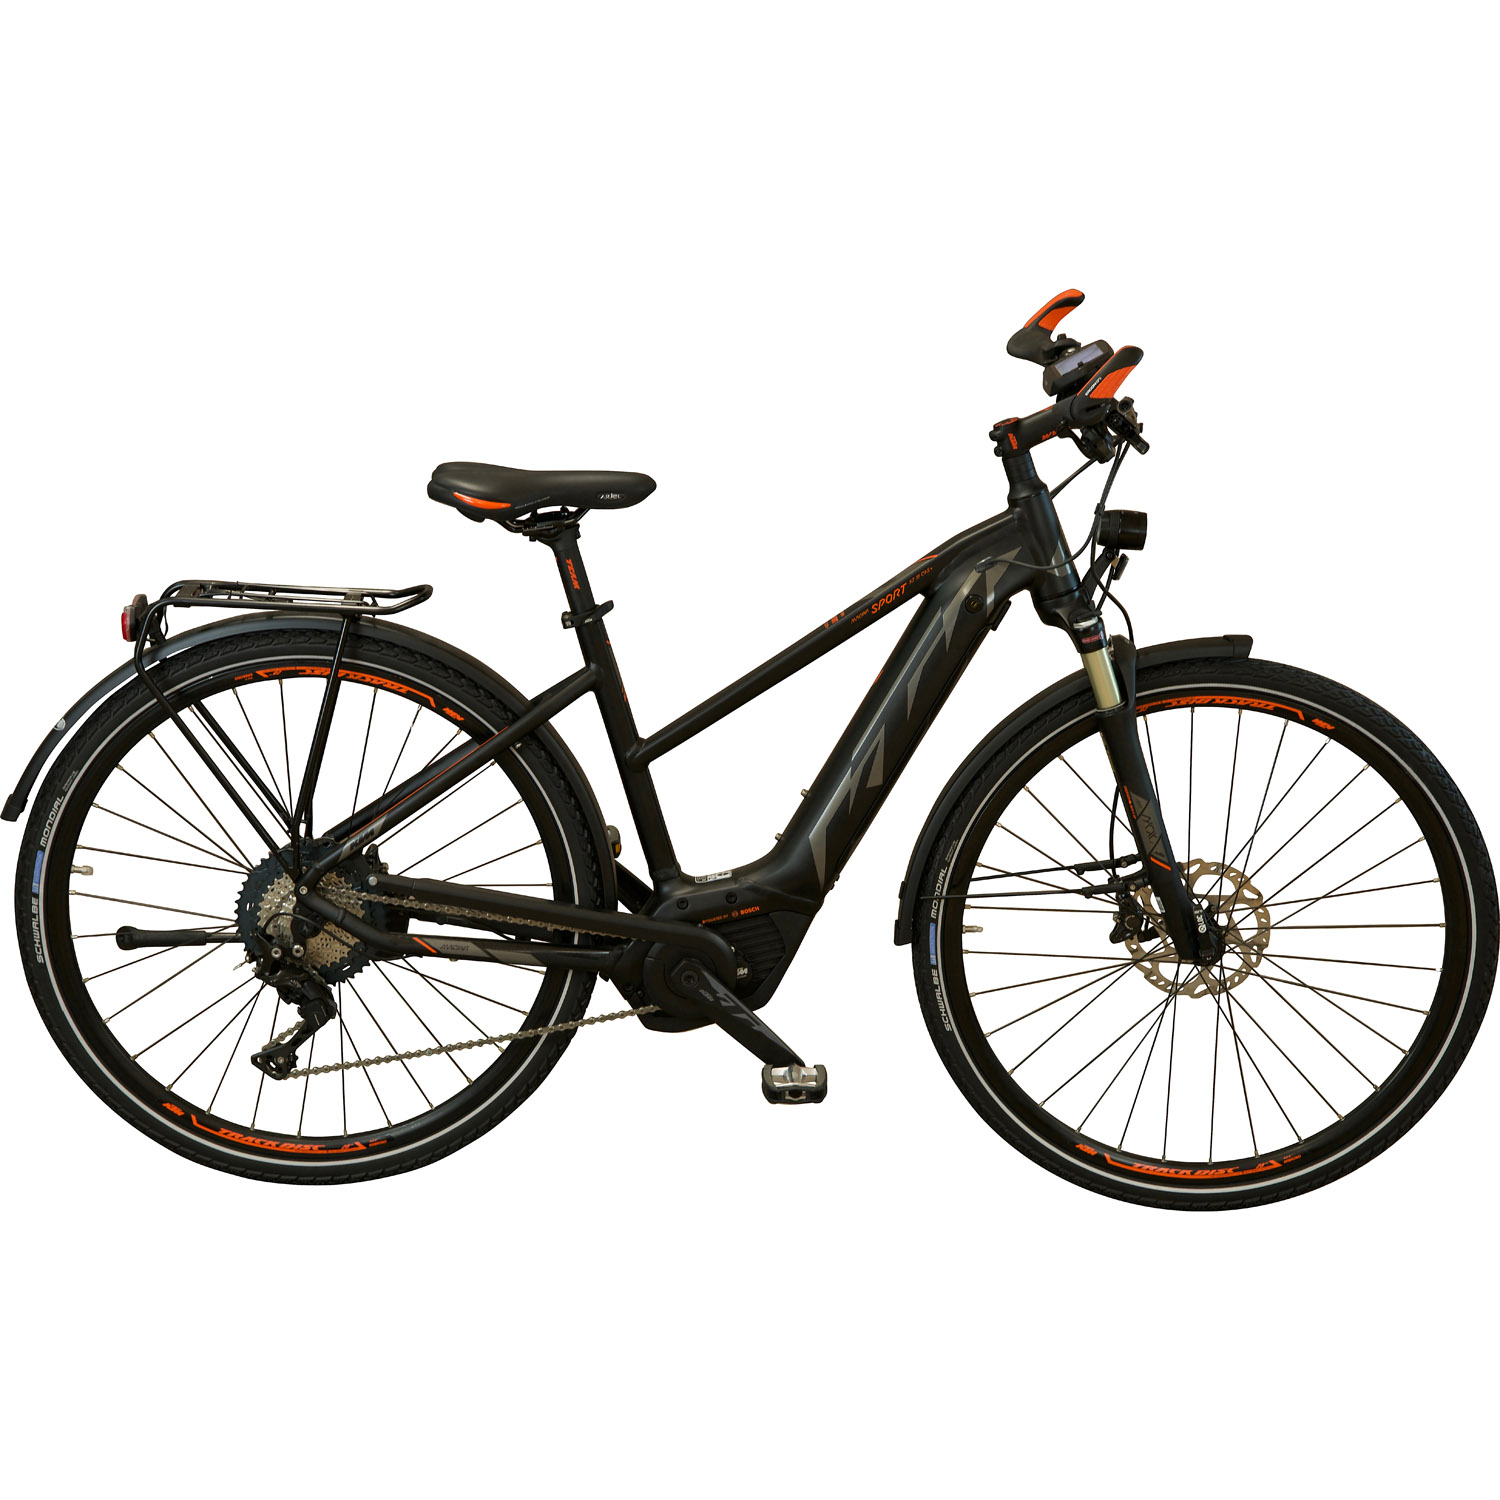 ktm macina sport xt11 cx5 elektrobike trekkingrad 60 cm. Black Bedroom Furniture Sets. Home Design Ideas